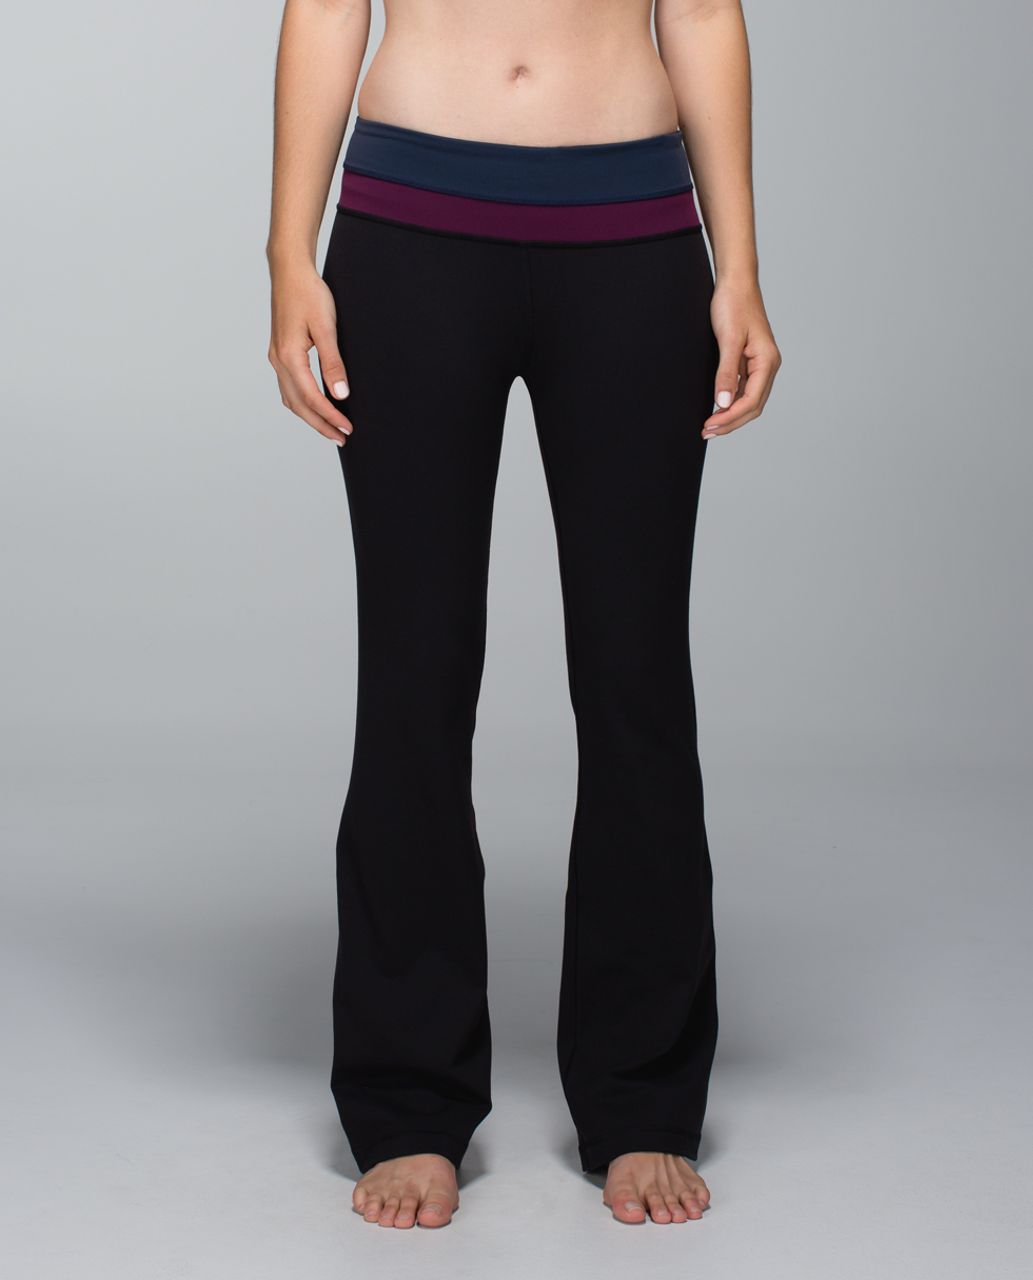 Lululemon Groove Pant *Full-On Luon (Regular) - Black / Inkwell / Plum